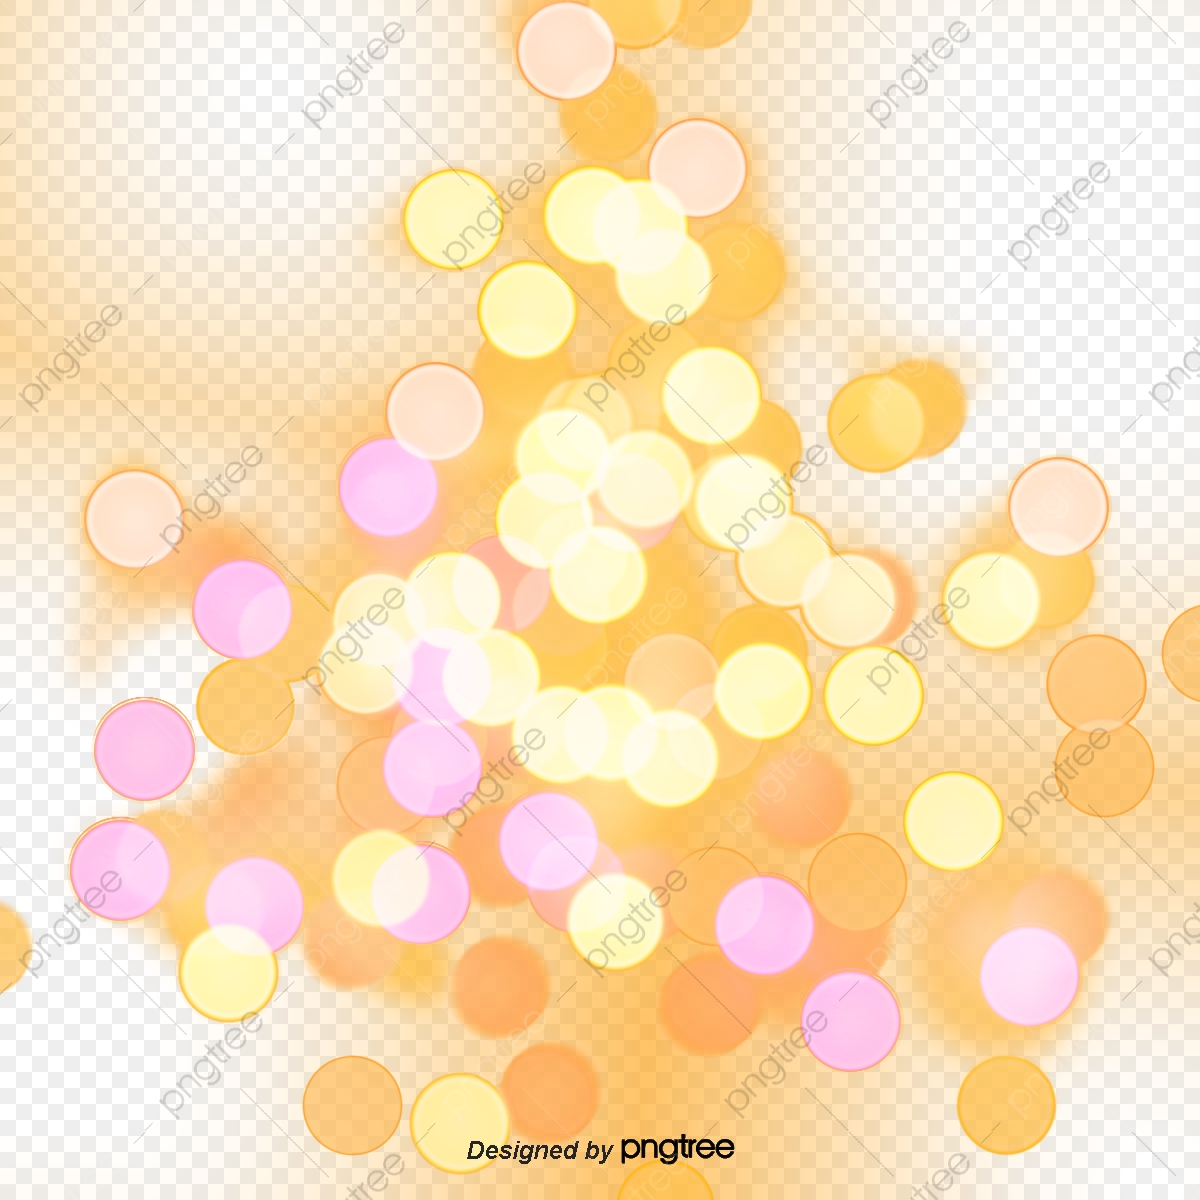 Flare, Color, Cool, Spot PNG Transparent Image and Clipart for Free.